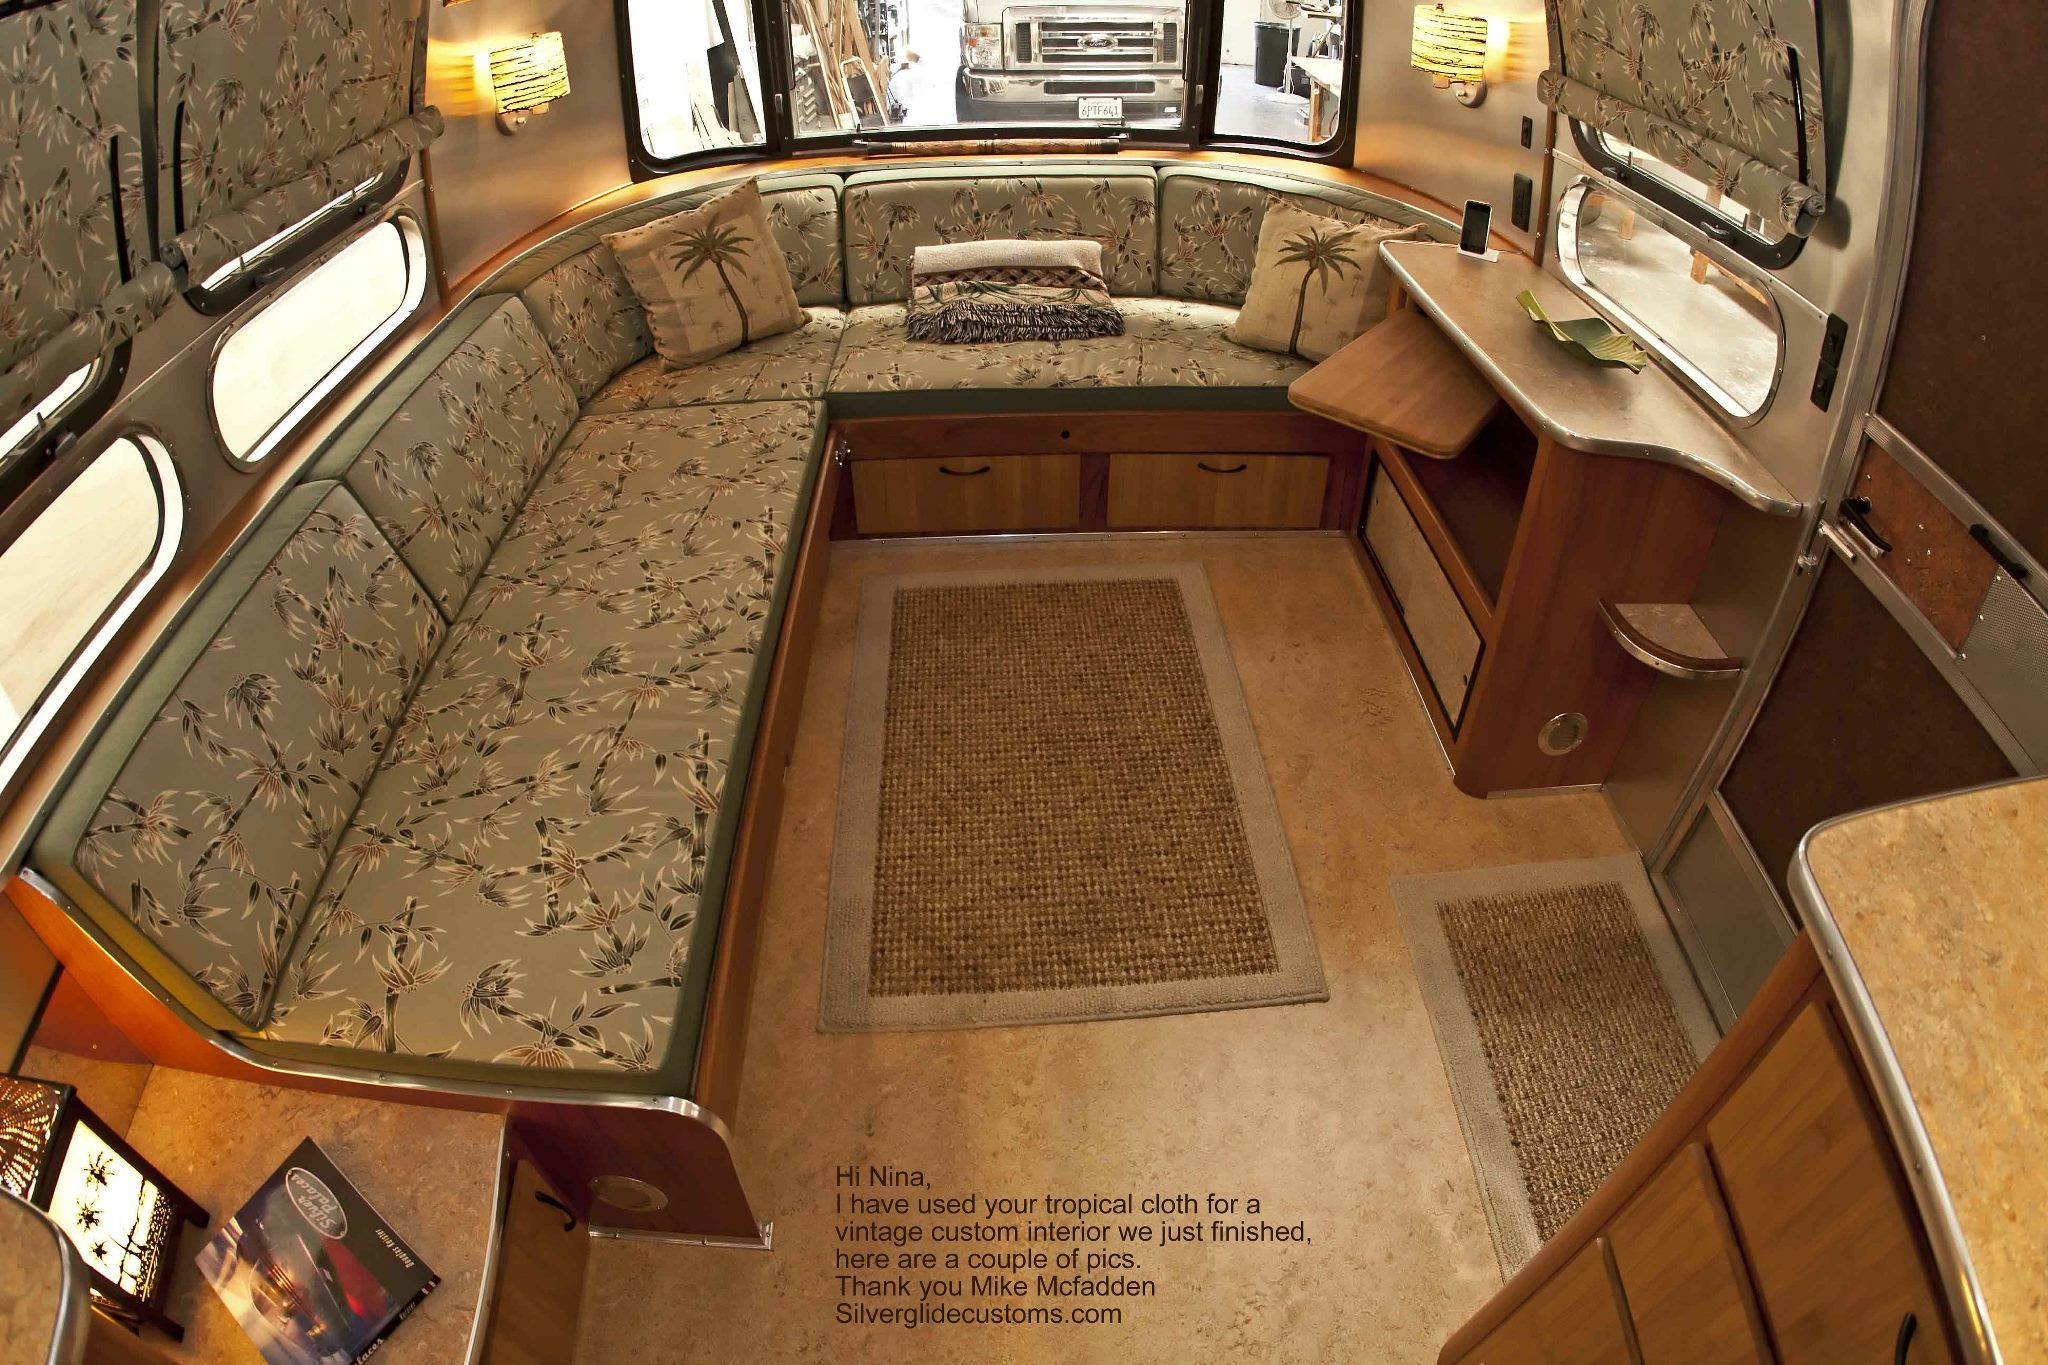 American retro caravans airstream renovation airstream sales uk - Our Goal Is To Share Knowledge About Everything Airstream Related Find Info On Airstream Repairs Parts Restoration Even Airstream Trailers And